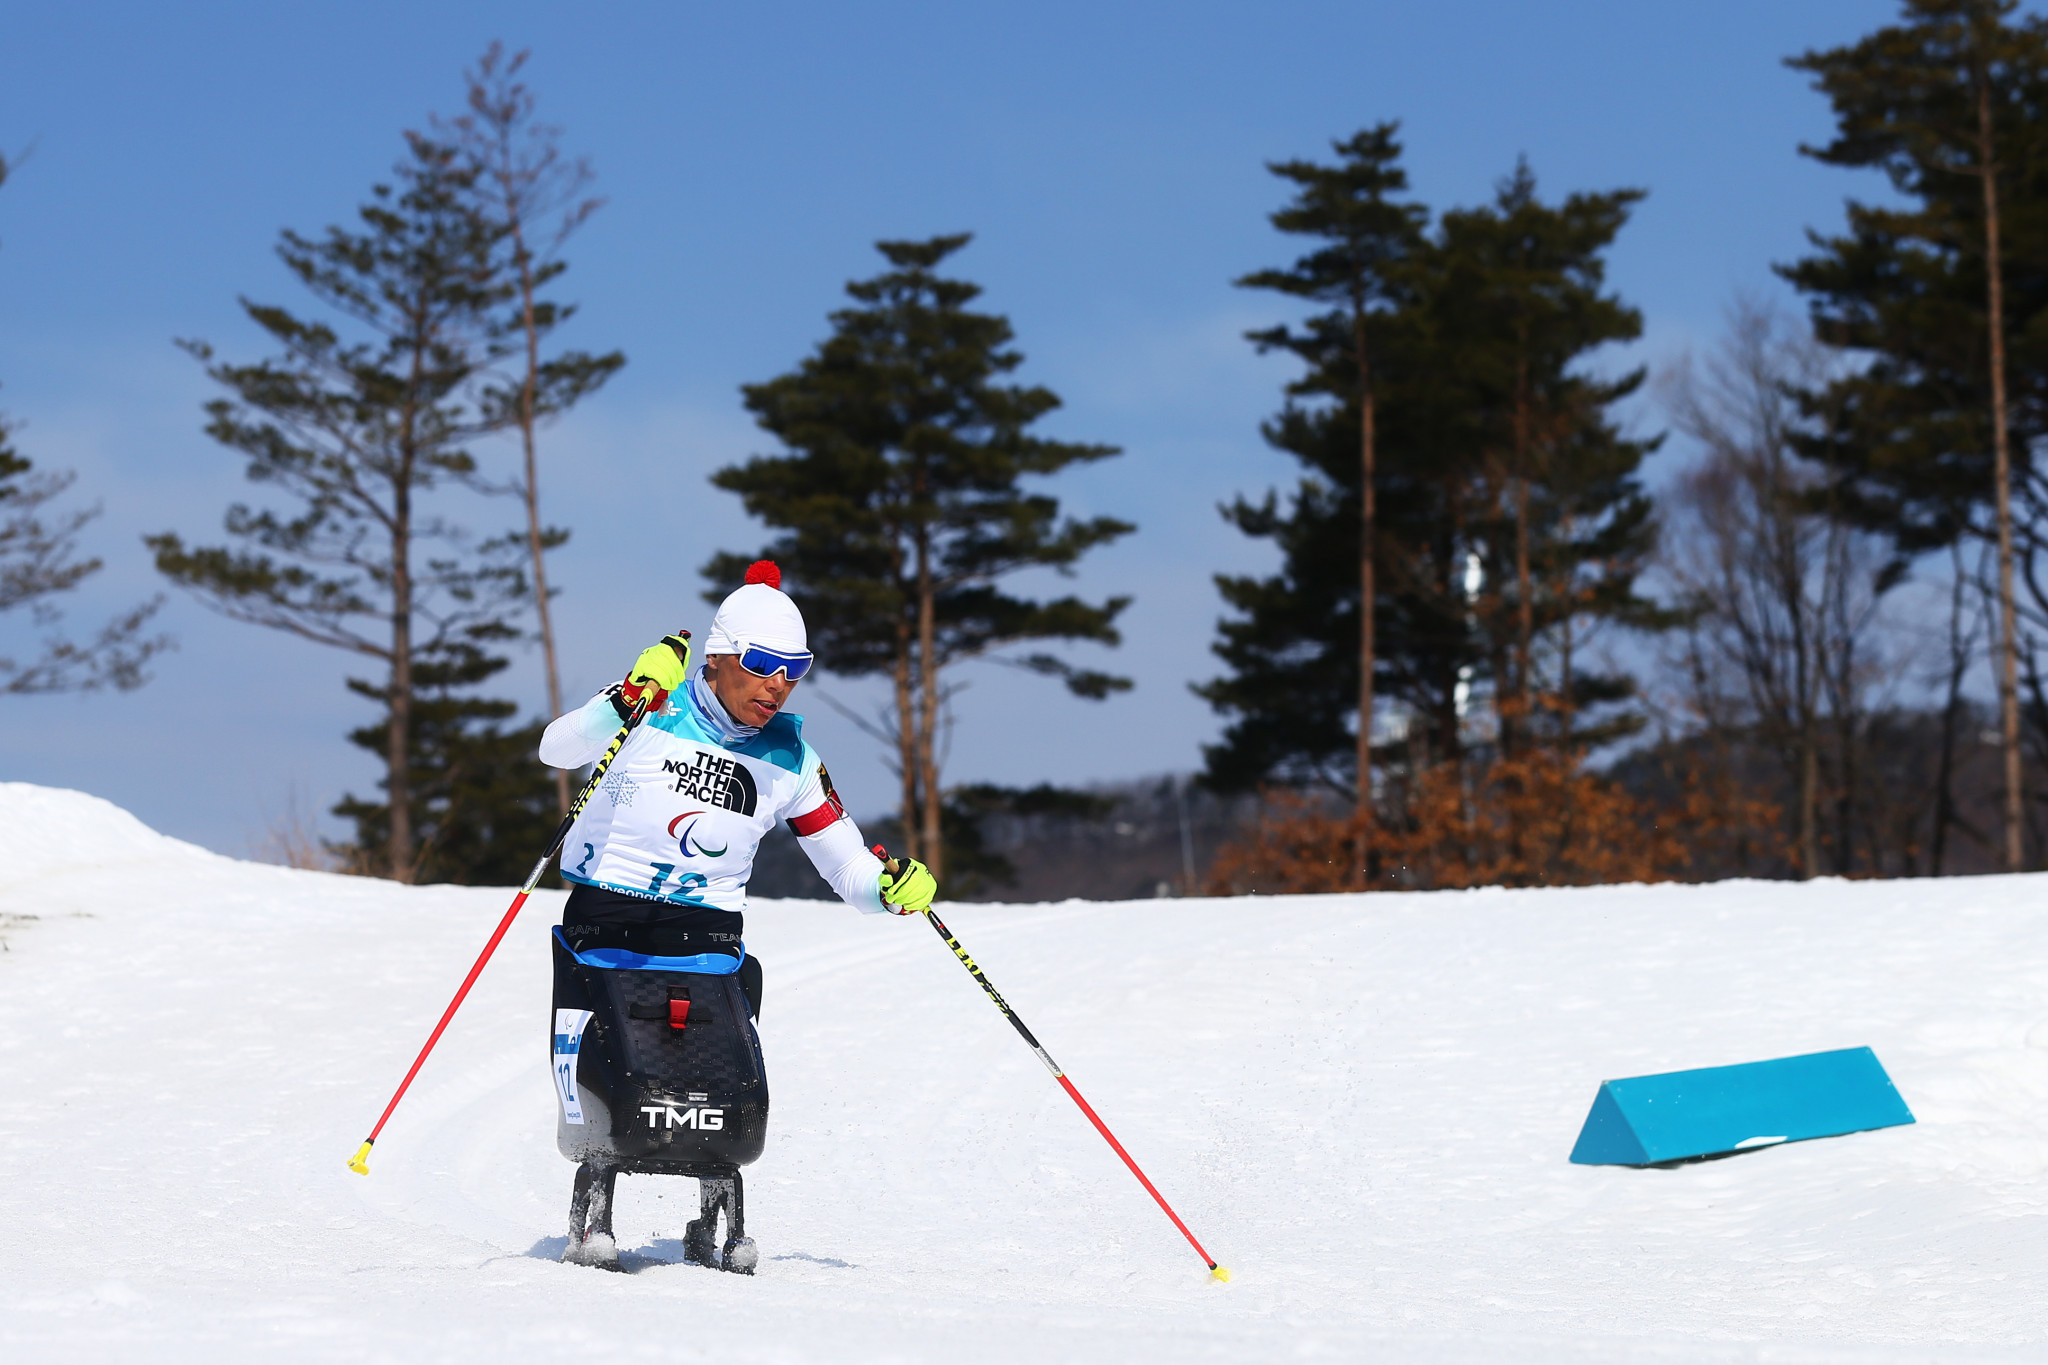 Andrea Eskau claimed her first Winter Paralympic title in today's biathlon competition ©Getty Images